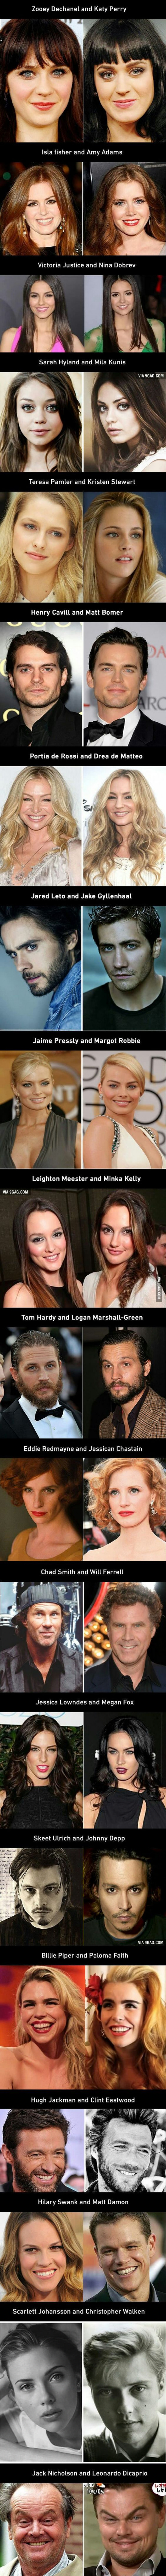 Actors That Look Shockingly Similar To Other Actors